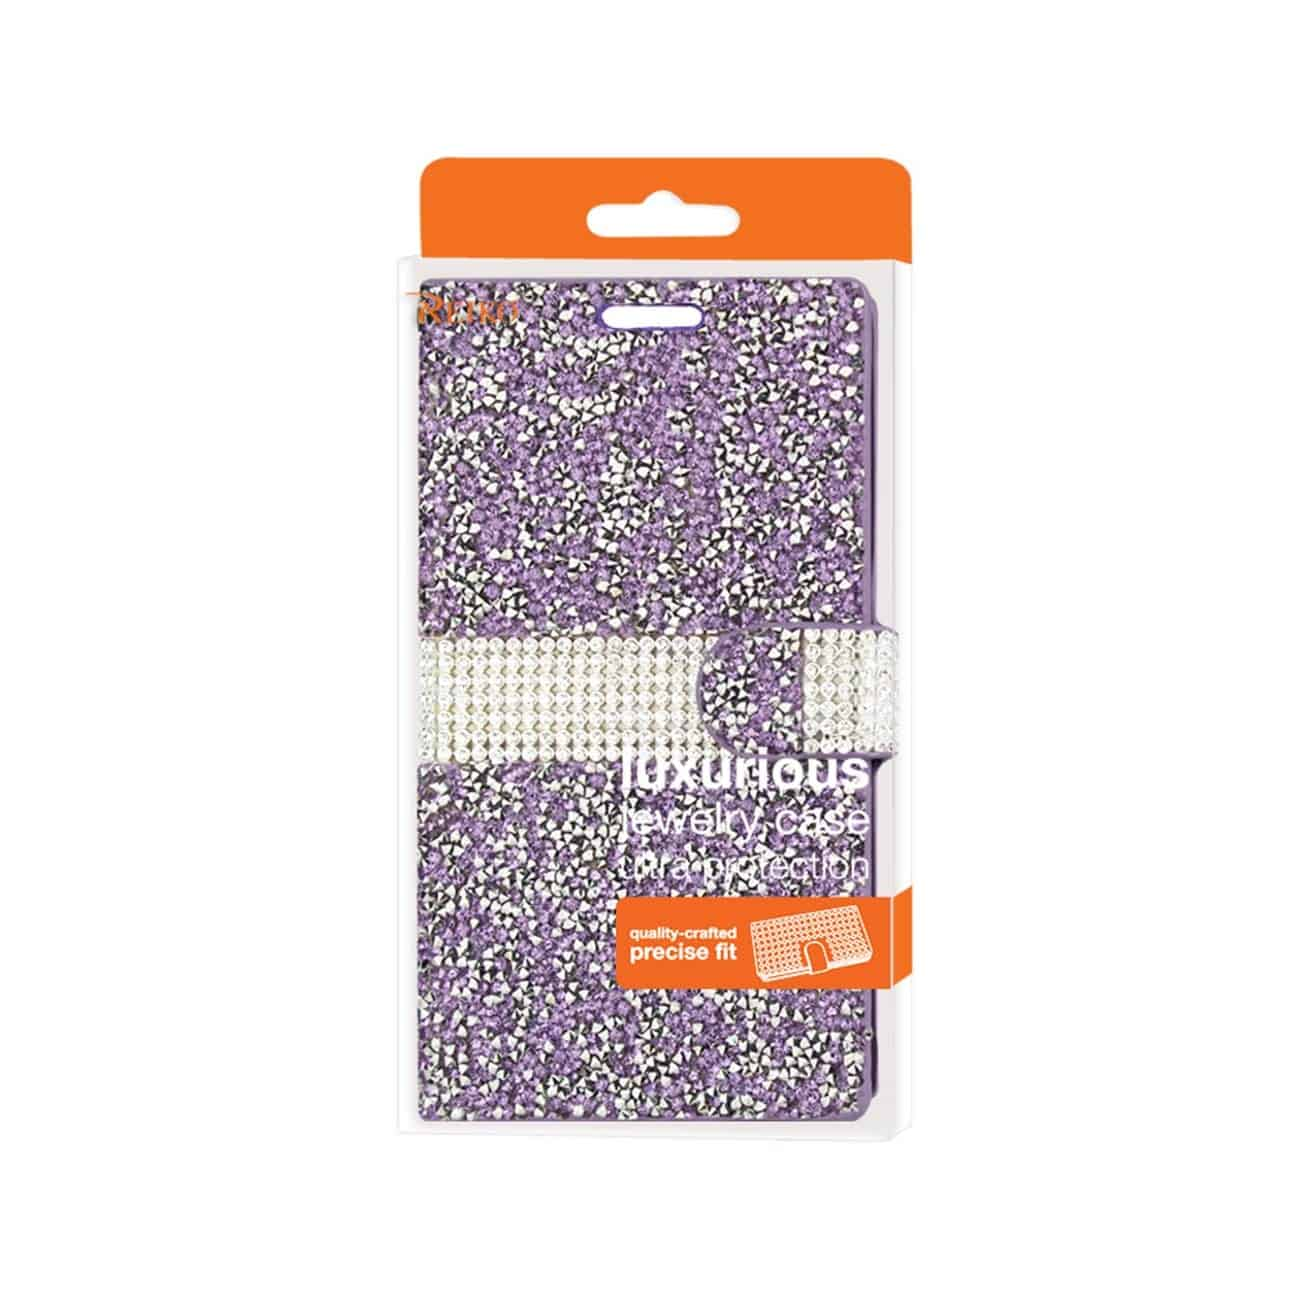 SAMSUNG GALAXY S7 EDGE DIAMOND RHINESTONE WALLET CASE IN PURPLE